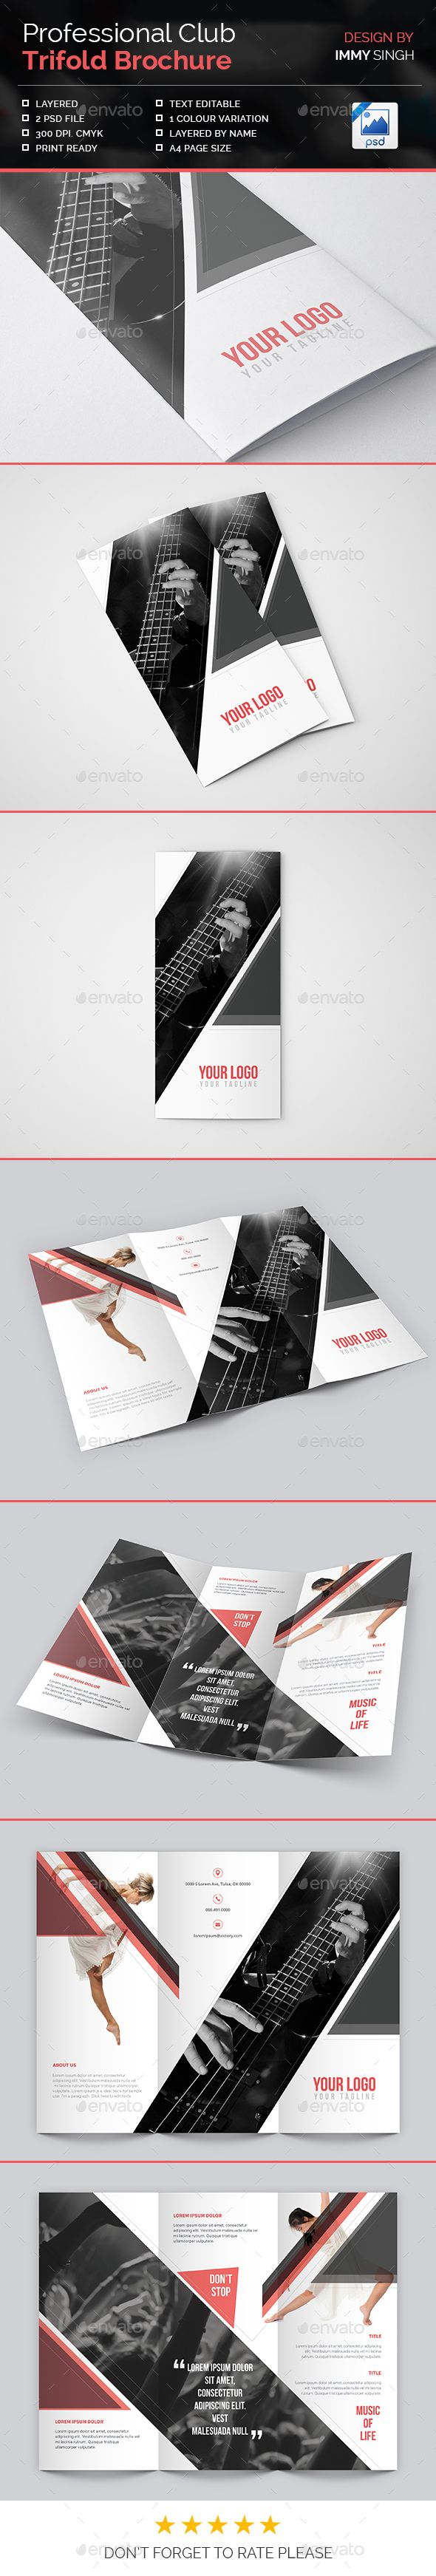 Professional Club Trifold Brochure Template PSD #design Download: http://graphicriver.net/item/professional-club-trifold-brochure/13932805?ref=ksioks